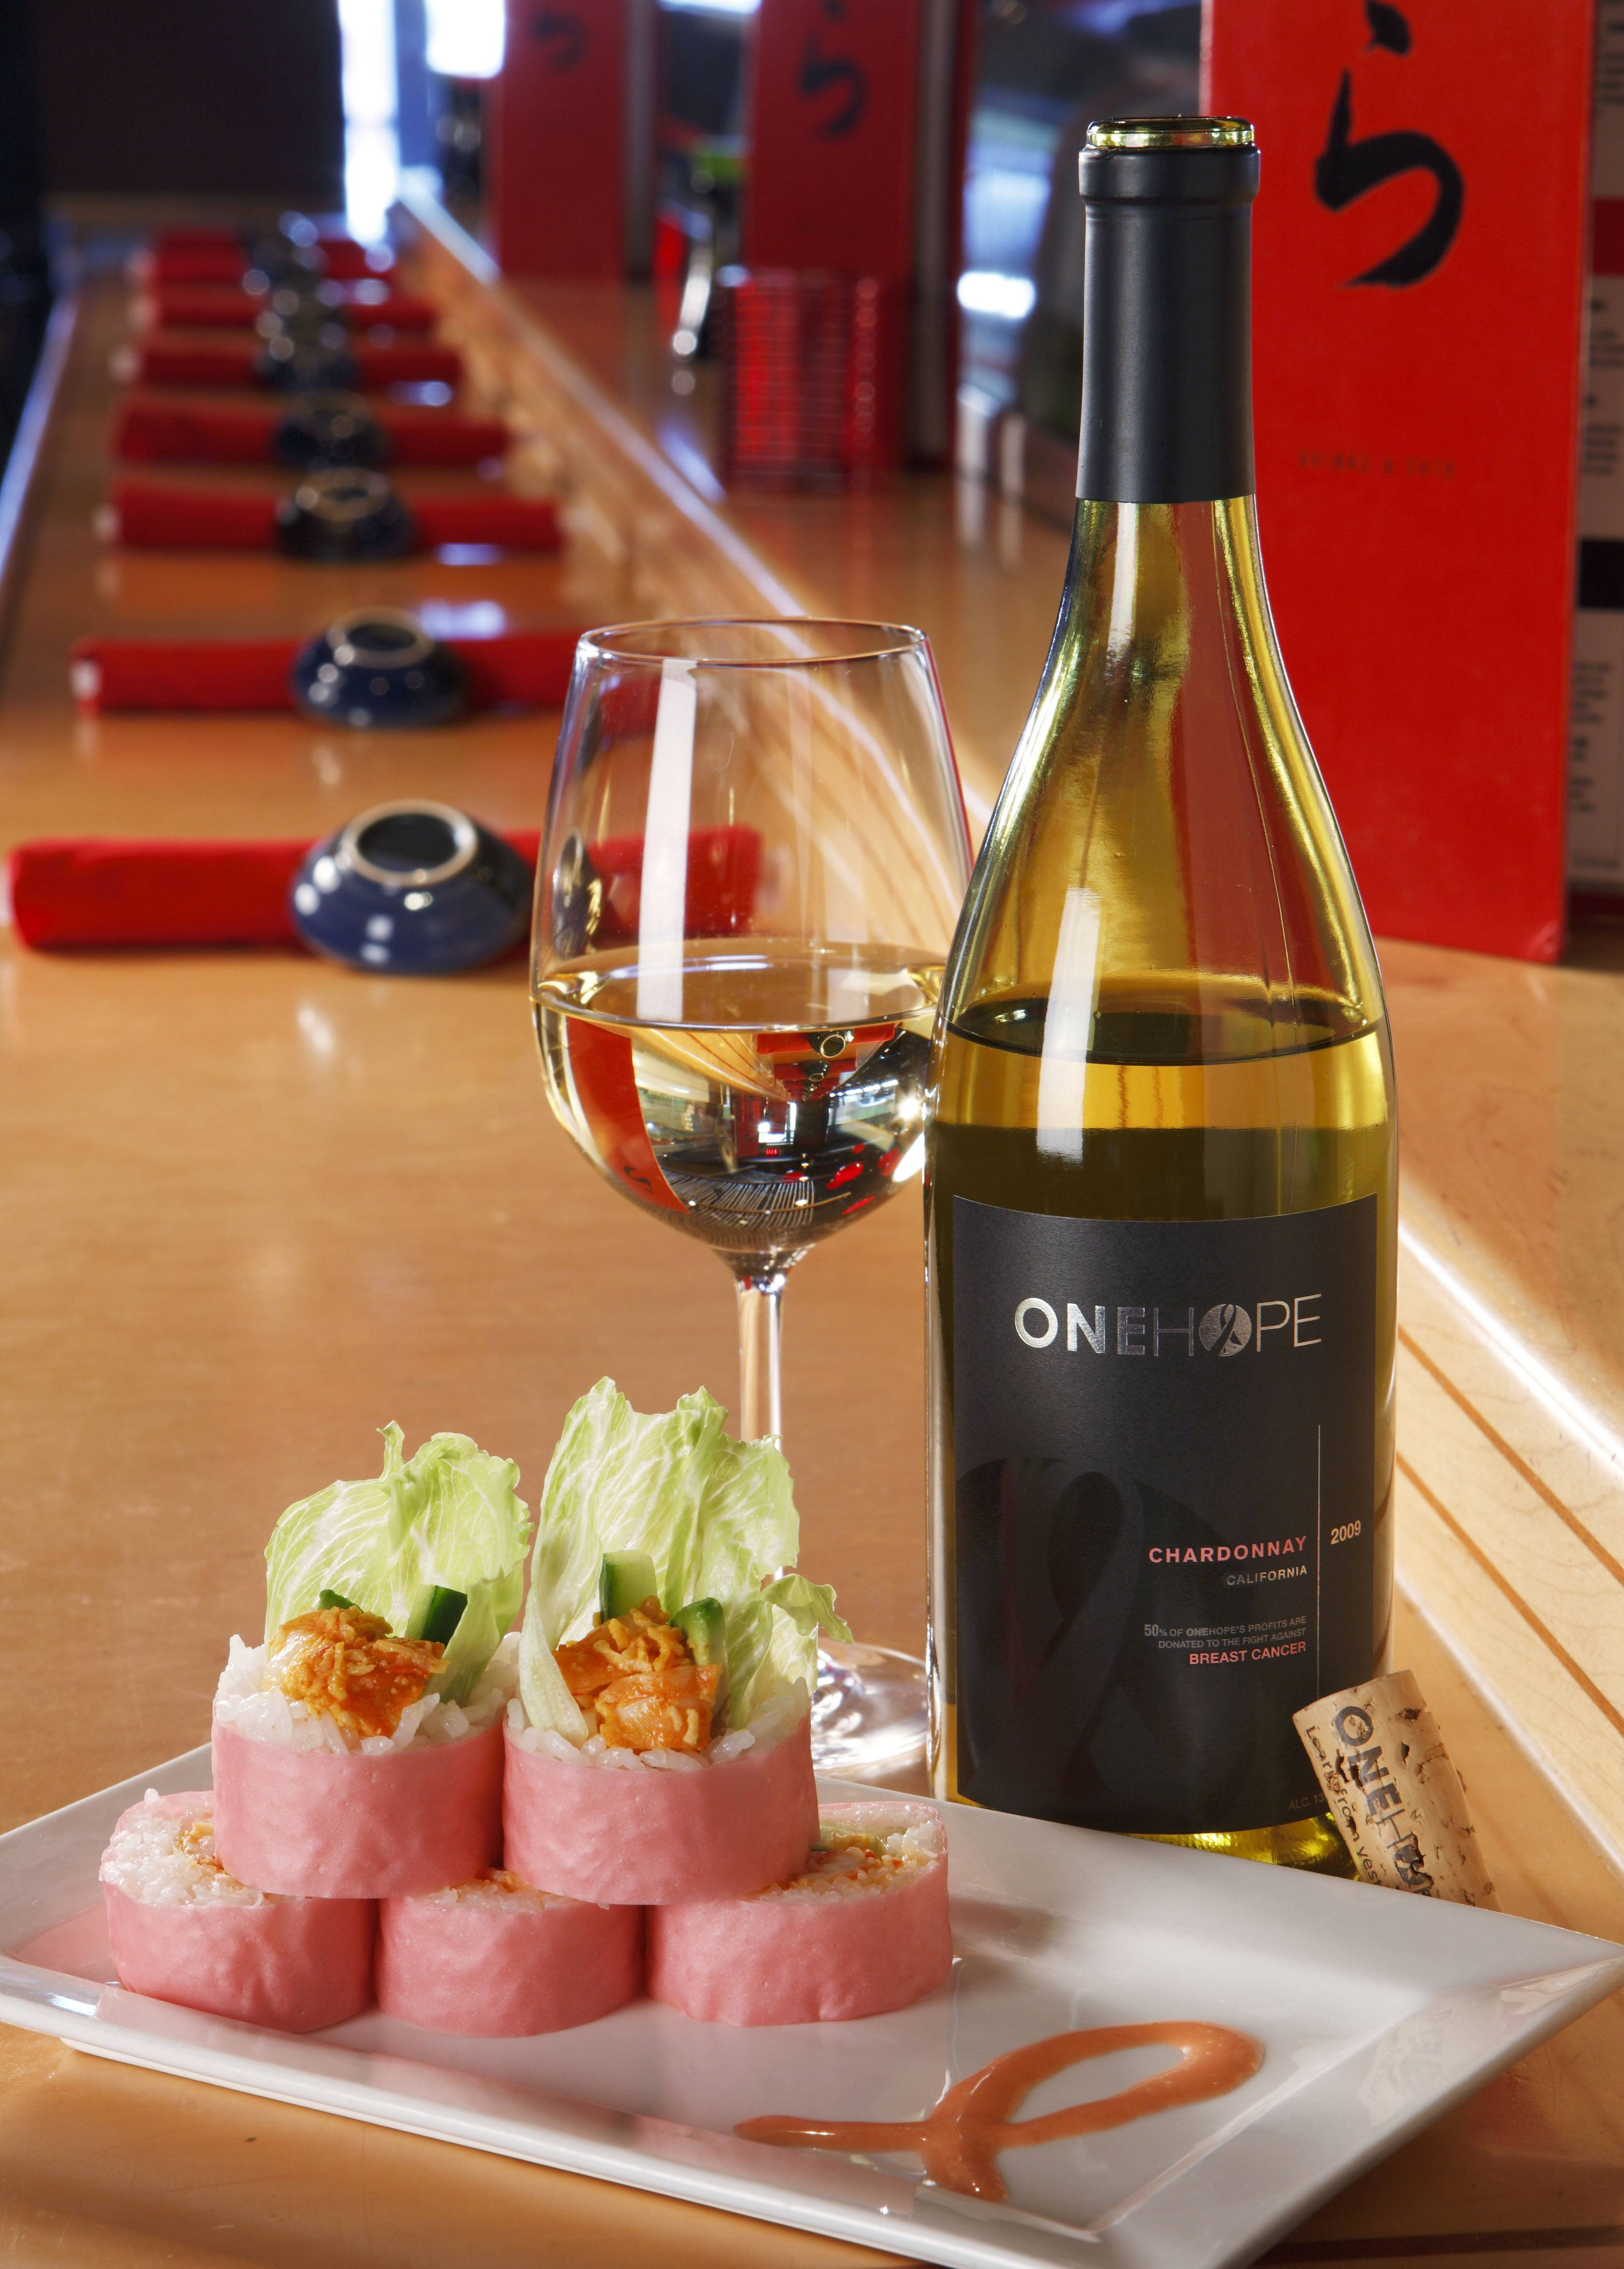 RA Sushi Goes Pink with a Wine and Sushi Special to Benefit the National Breast Cancer Foundation